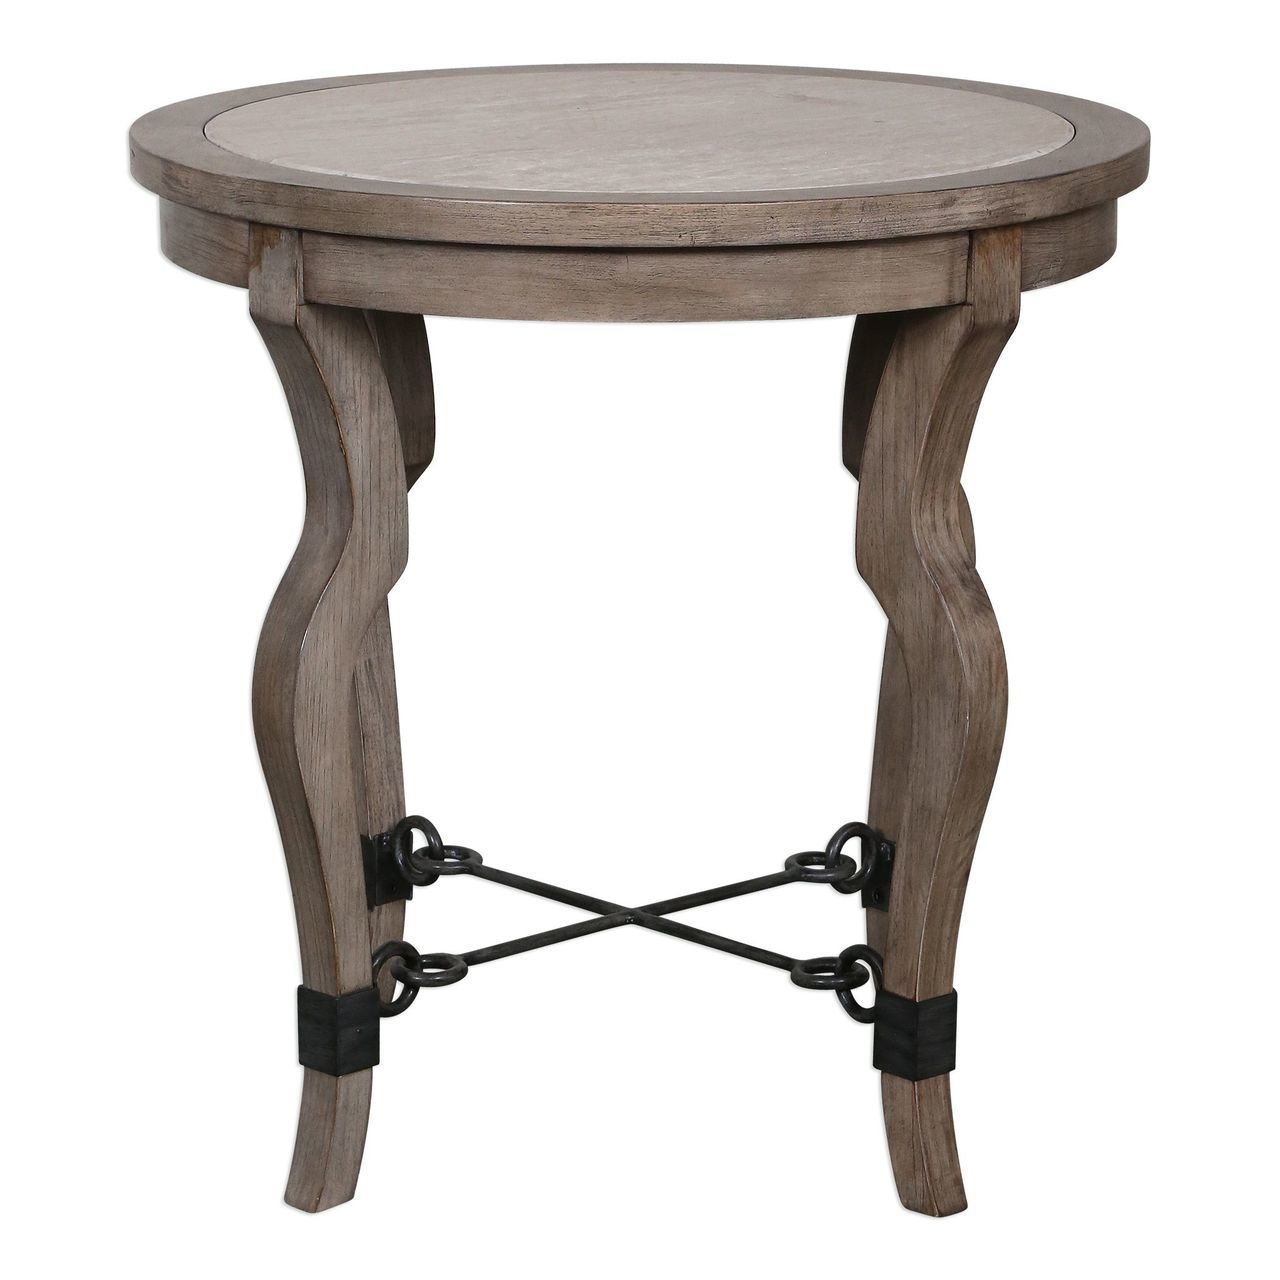 luxe curved weathered wood round accent table travertine inlay cardboard light stone top coffee sets oval antique pottery barn cocktail tables long decorative slim white side